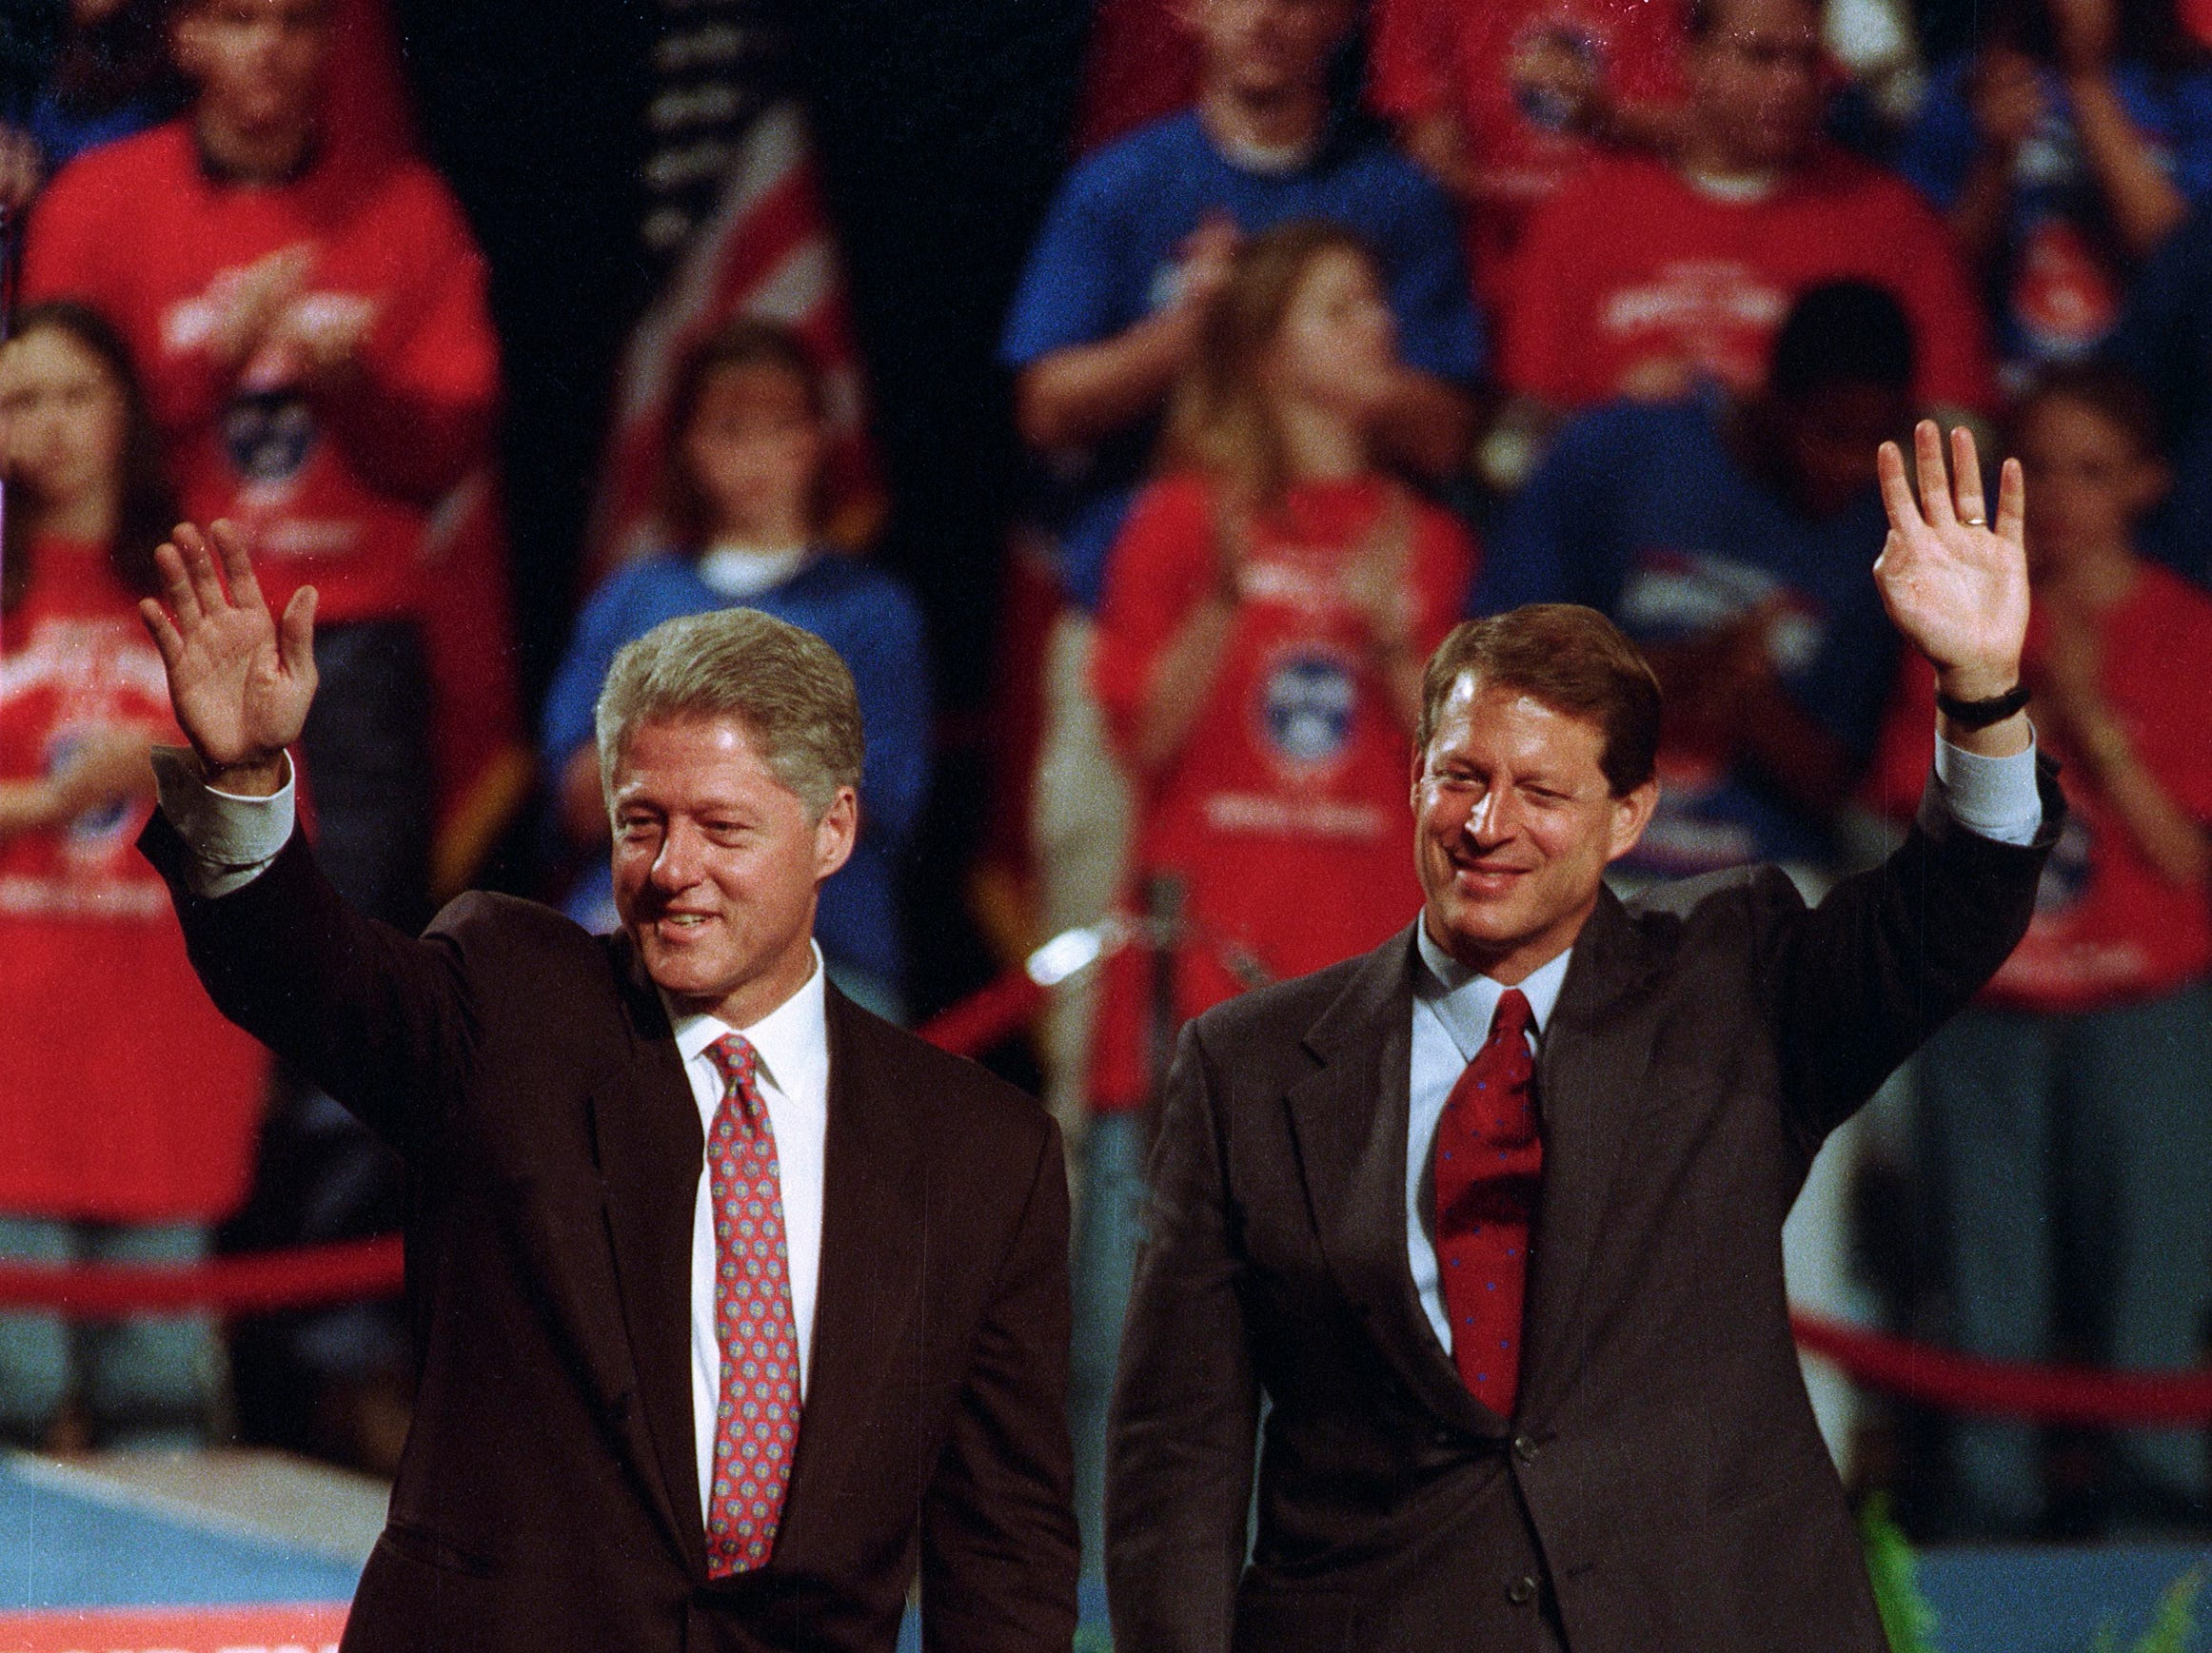 """In an Oct. 10, 1996, photograph, President Bill Clinton, left, and Vice President Al Gore greet supporters during a campaign stop at the Knoxville Civic Auditorium. Clinton announced a plan to bridge the """"digital divide"""" among the nation's school children by providing an Internet connection in every classroom. (Paul Efird/News Sentinel)"""